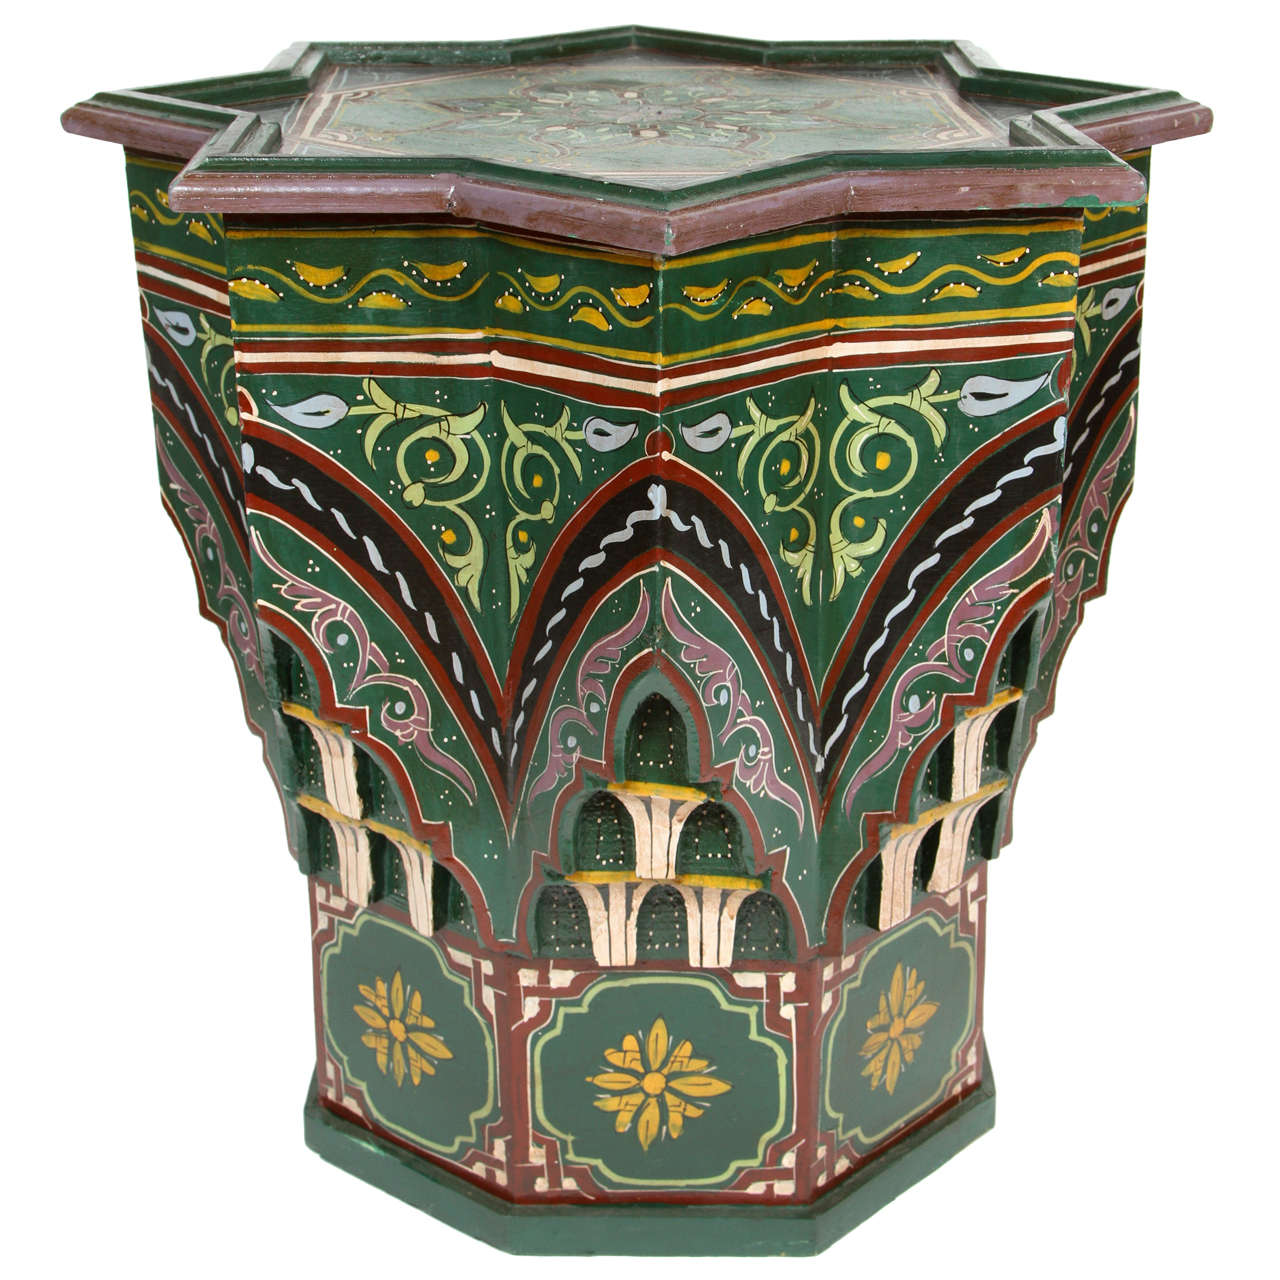 Moroccan hand painted green star shape side table at 1stdibs for Moroccan hand painted furniture